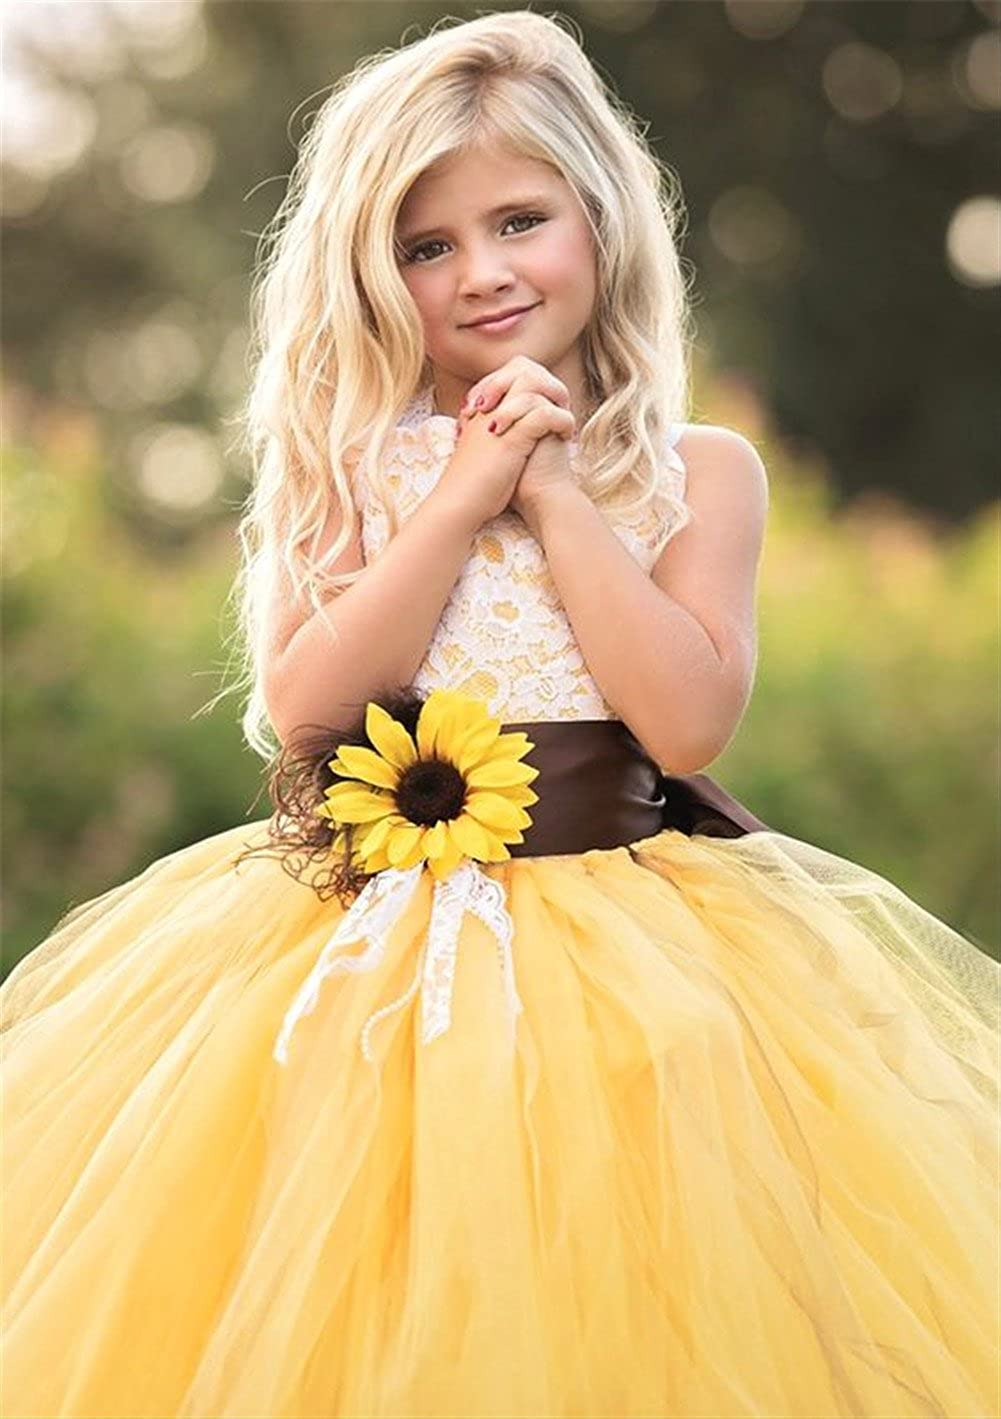 7c9ecc8f0d9 Amazon.com  AnnaLin Yellow Tulle with Sunflower Belt Flower Girl Dress for  Wedding Party First Communion Dress for Girls  Clothing